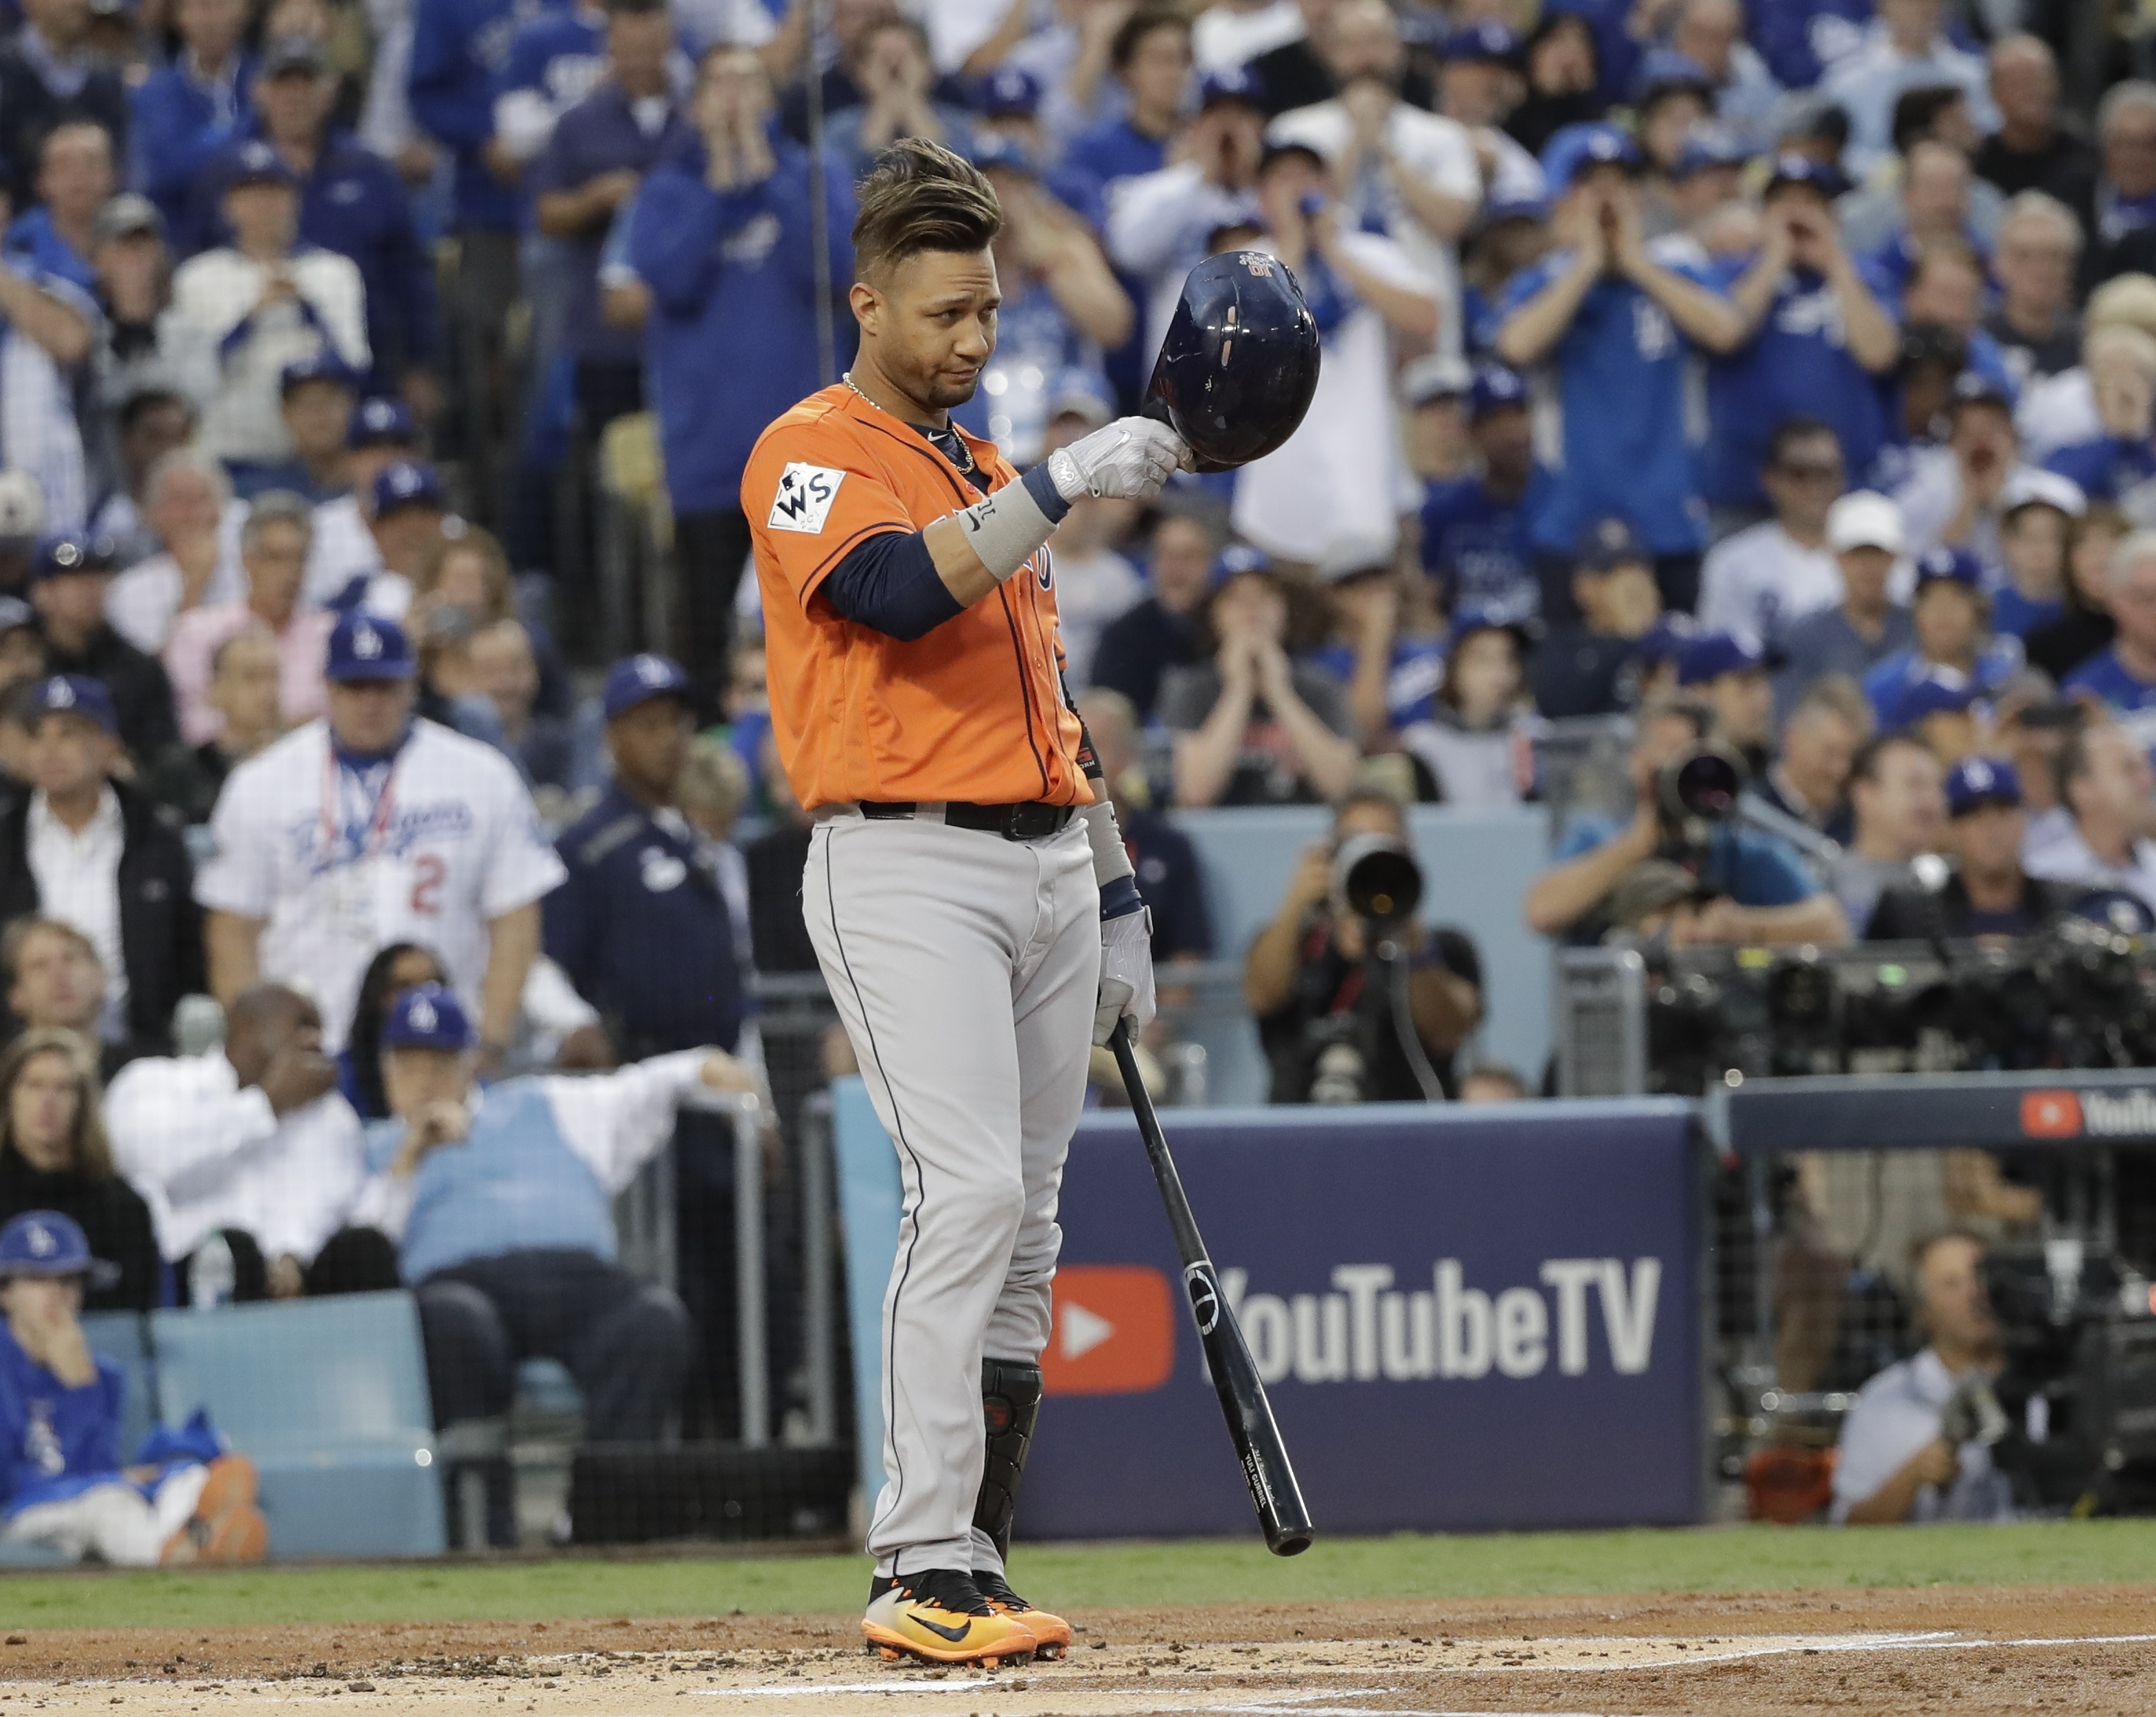 <div class='meta'><div class='origin-logo' data-origin='AP'></div><span class='caption-text' data-credit='AP'>Houston Astros' Yuli Gurriel tips his hat as he gestures to Los Angeles Dodgers starting pitcher Yu Darvish during the first inning of Game 7. (AP Photo/David J. Phillip)</span></div>